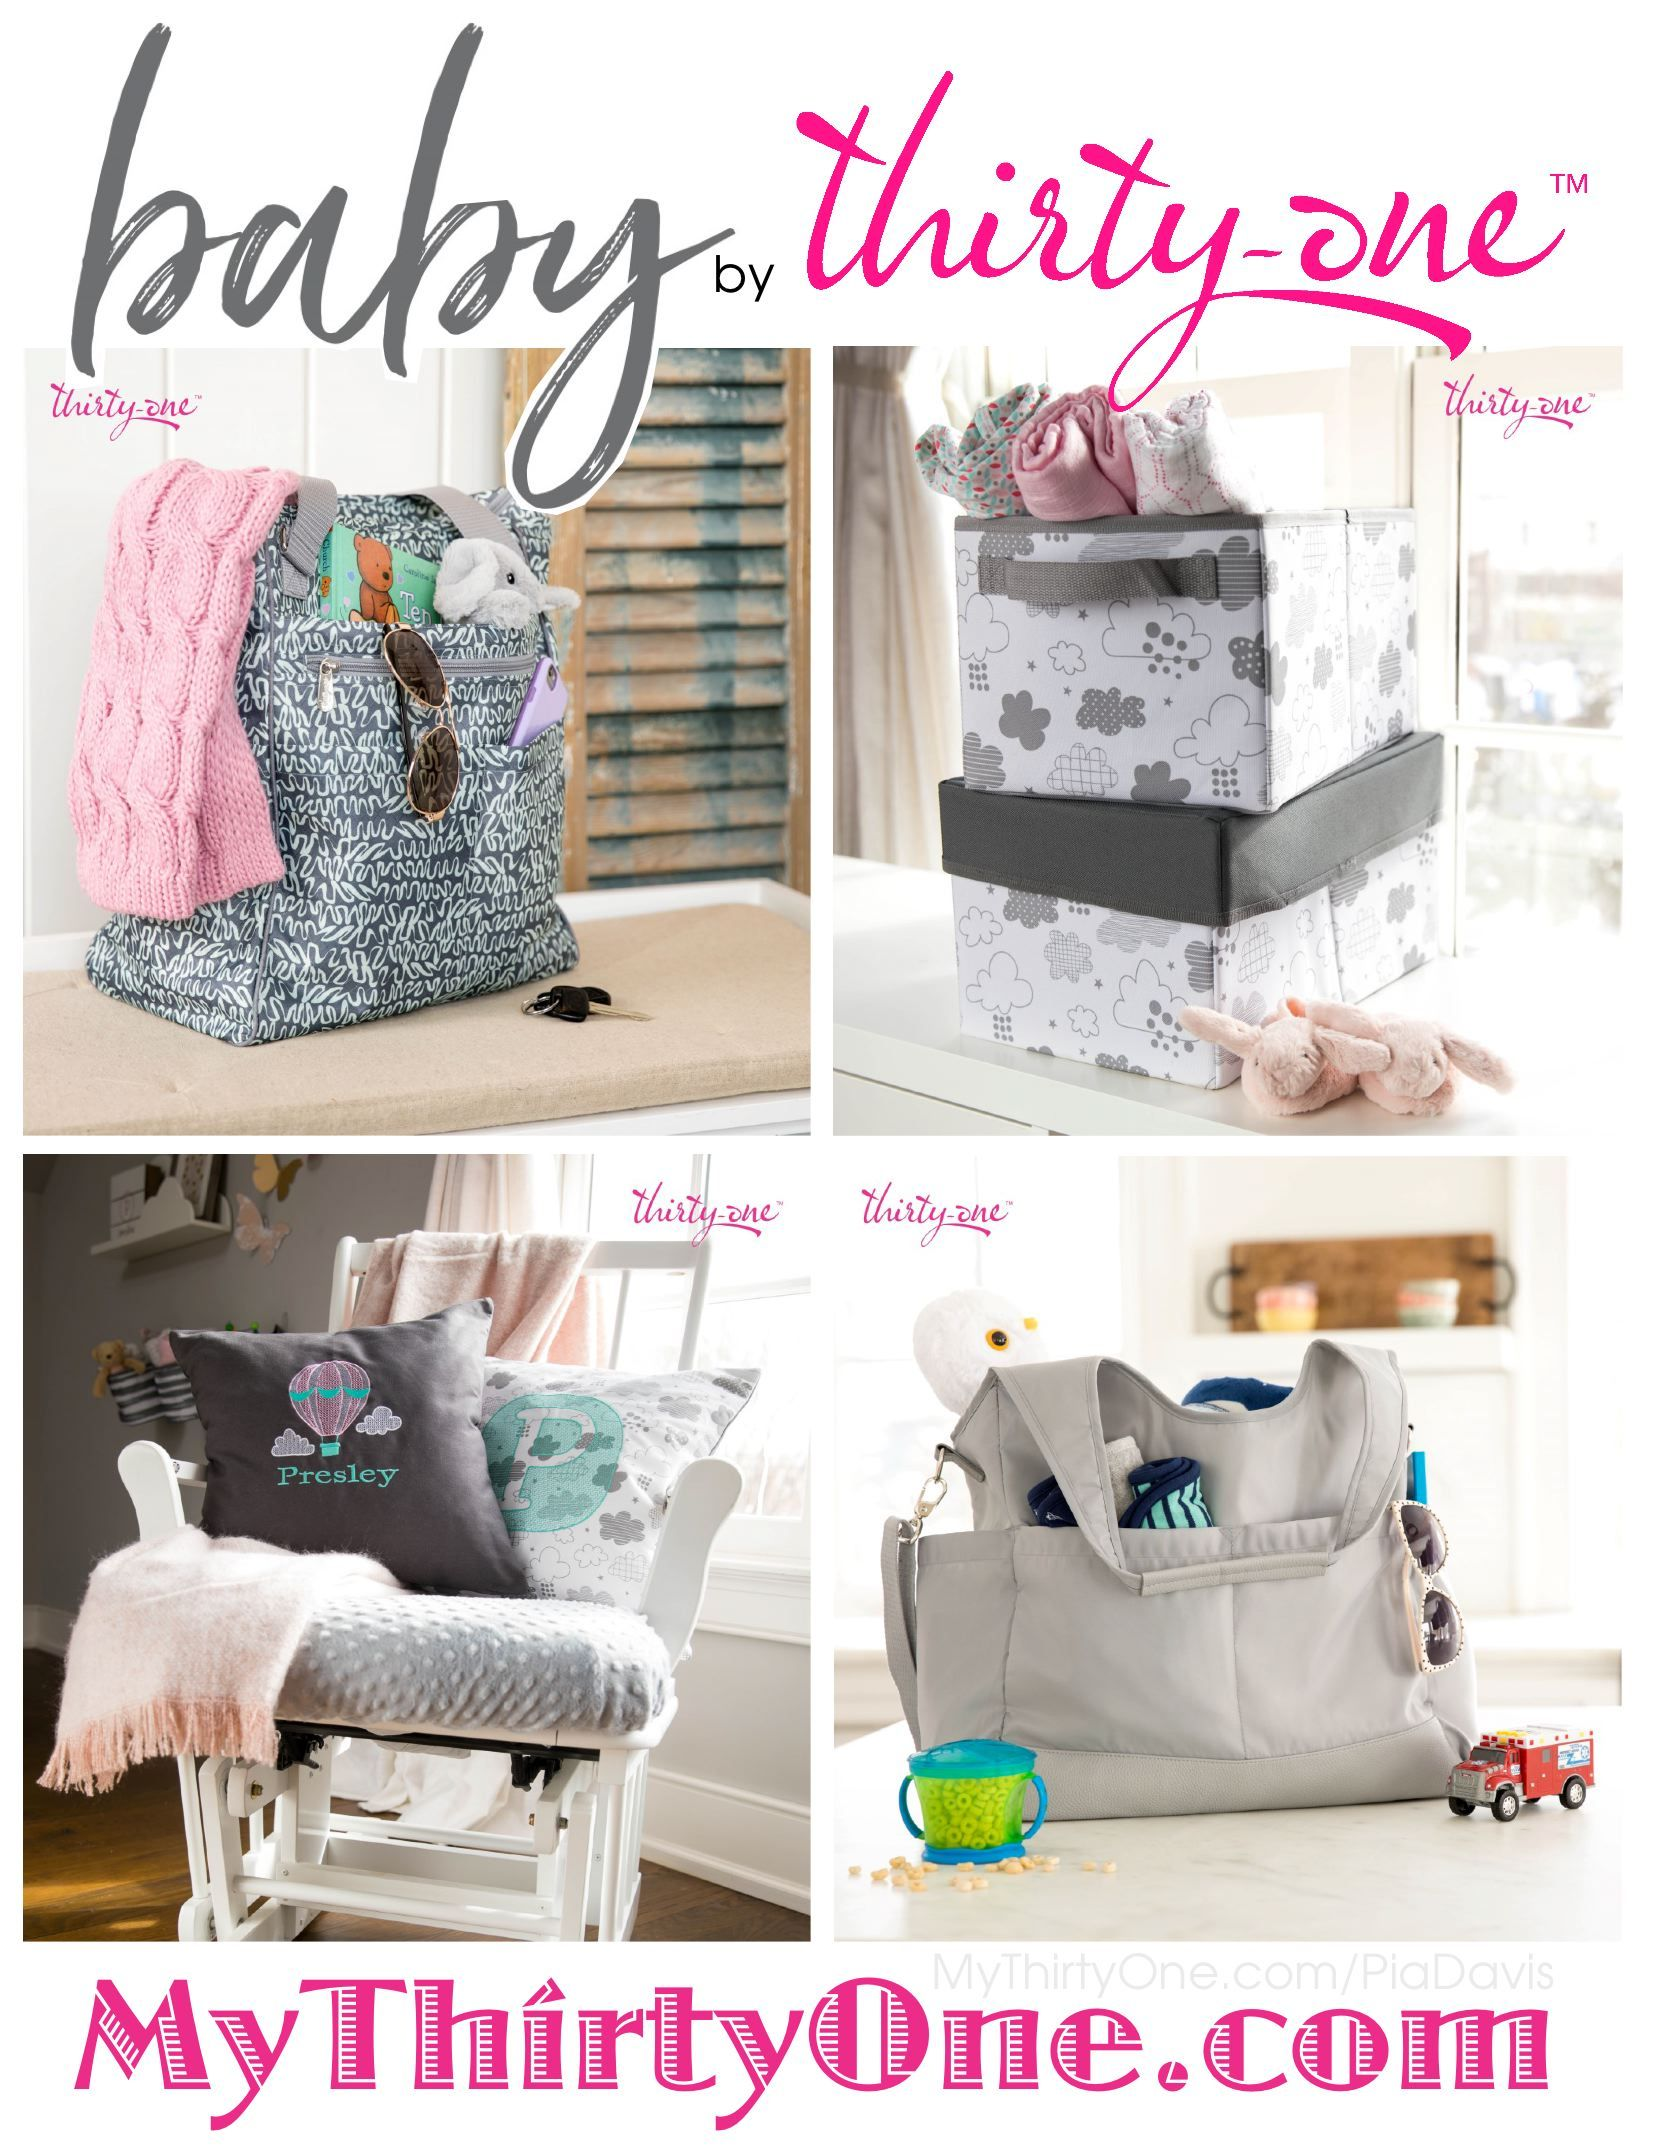 31 Baby By Thirty One Gifts Has New Personalization Ideas